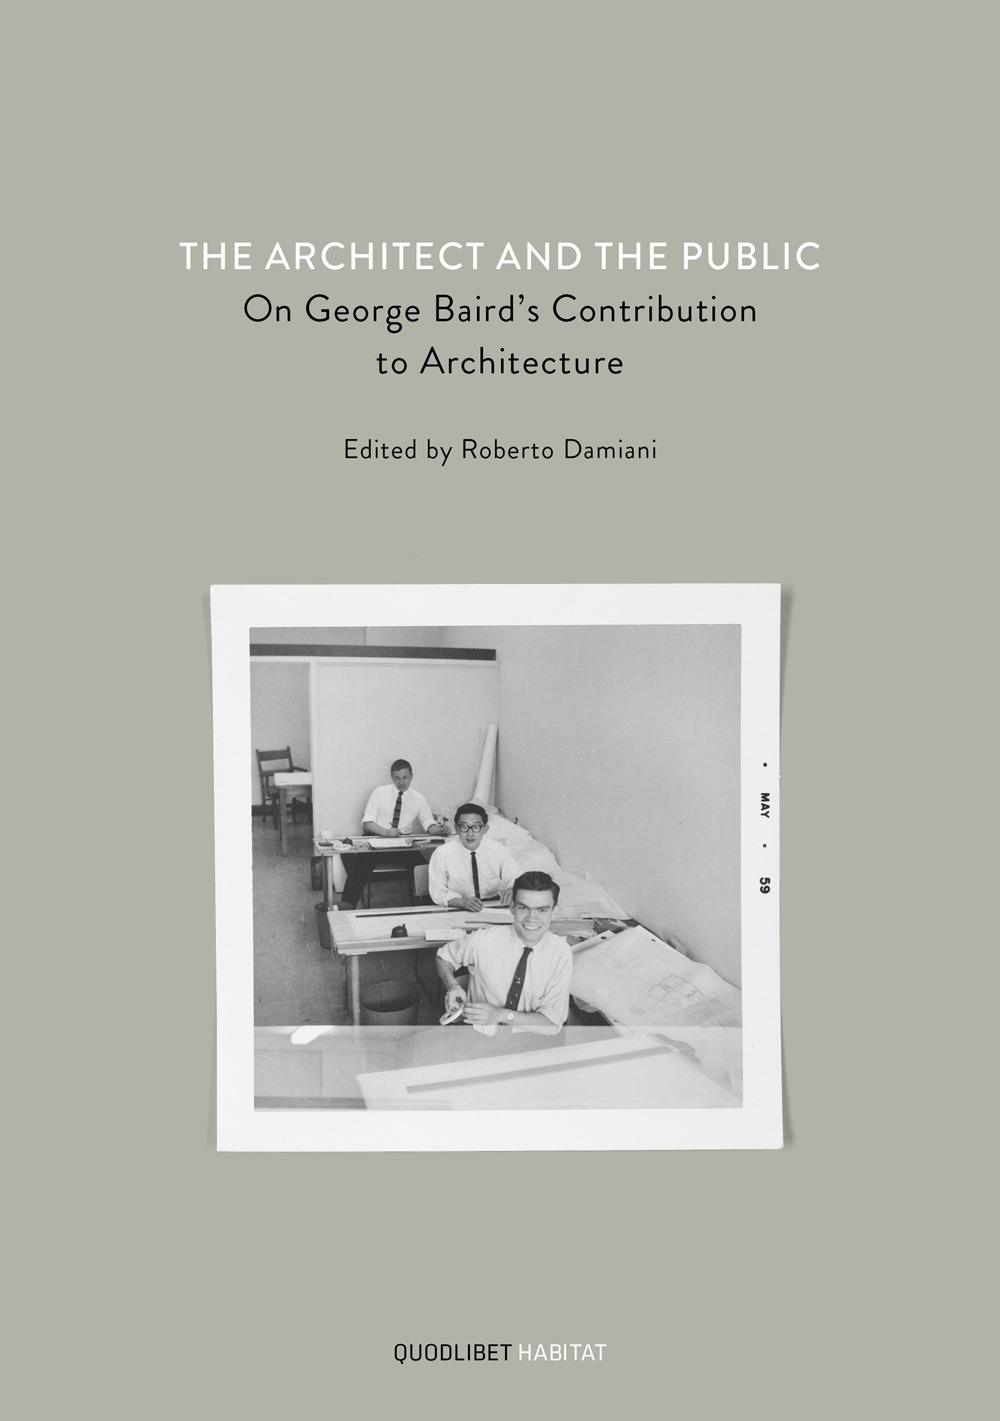 ARCHITECT AND THE PUBLIC. ON GEORGE BAIRD'S CONTRIBUTION TO ARCHITECTURE (THE) - Damiani R. (cur.) - 9788822904010